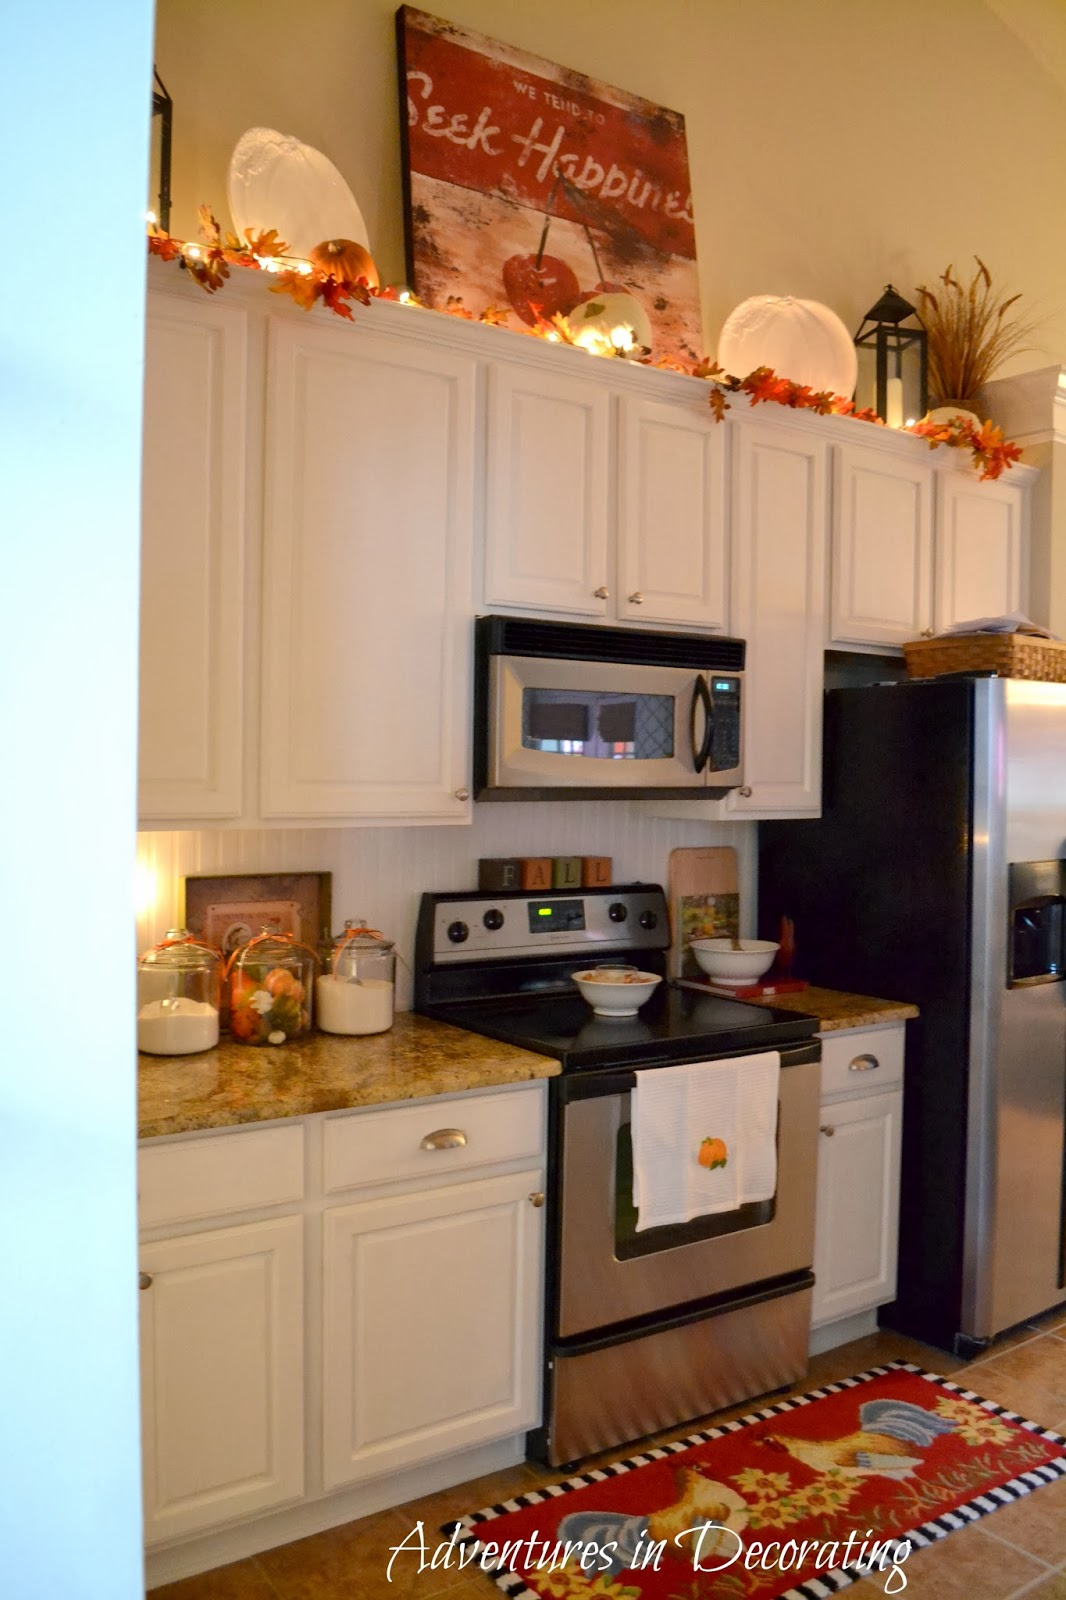 Adventures in Decorating: Our Fall Kitchen ... on Kitchen Decoration Ideas  id=46127